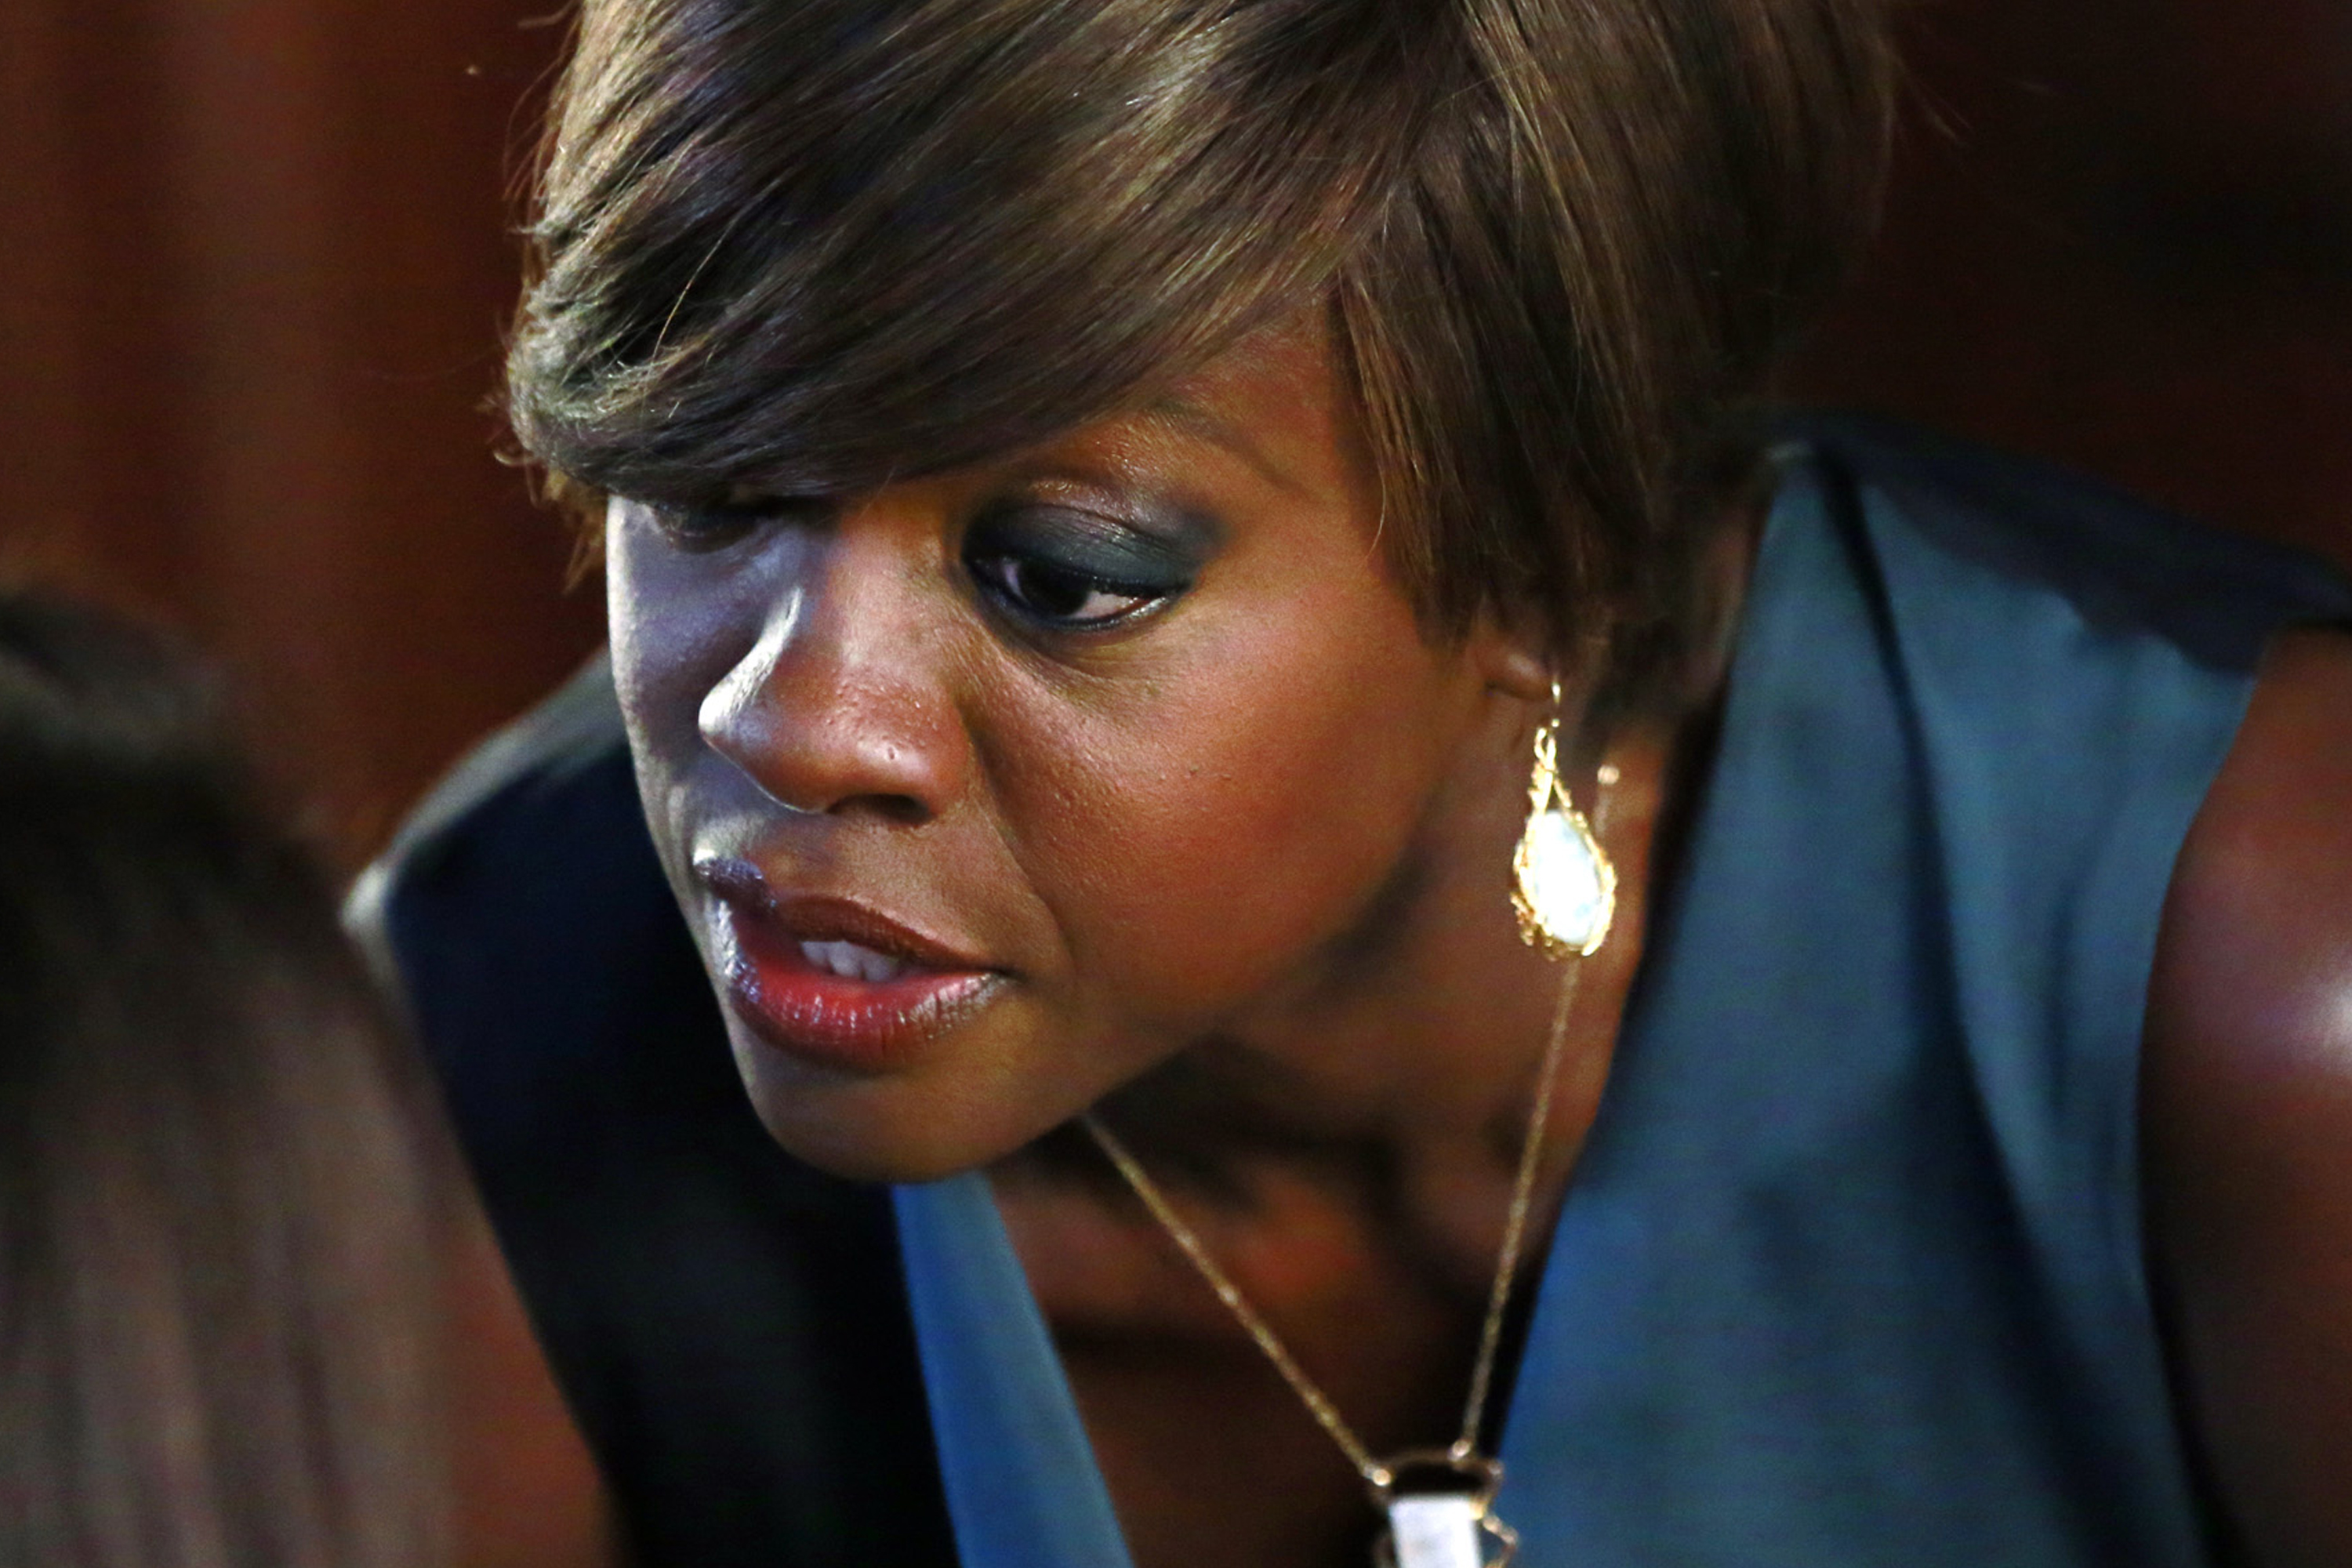 How To Get Away With A Murderer Staffel 1